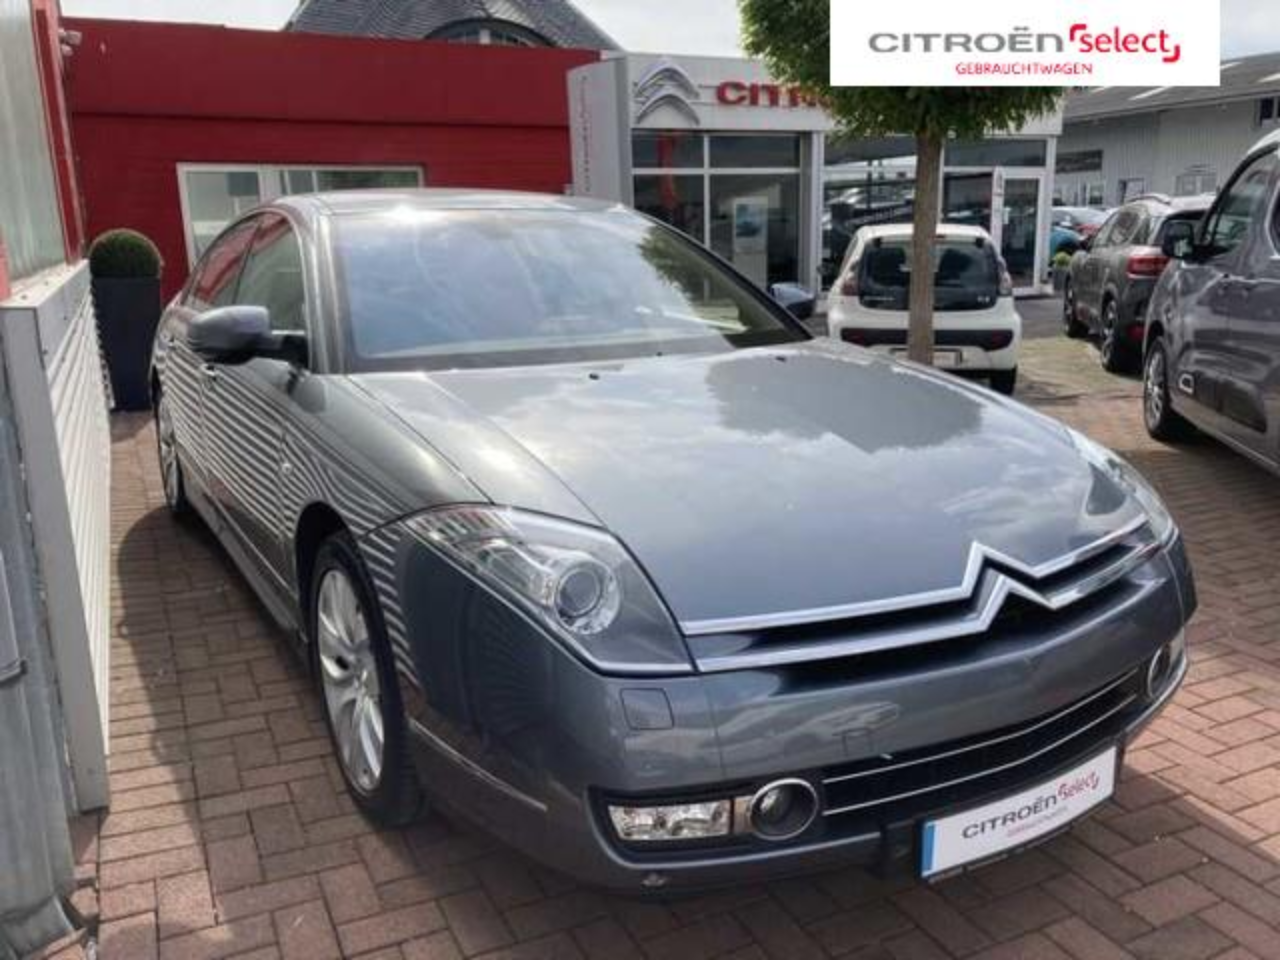 Citroën C6 3.0 V6 HDI Exclusive